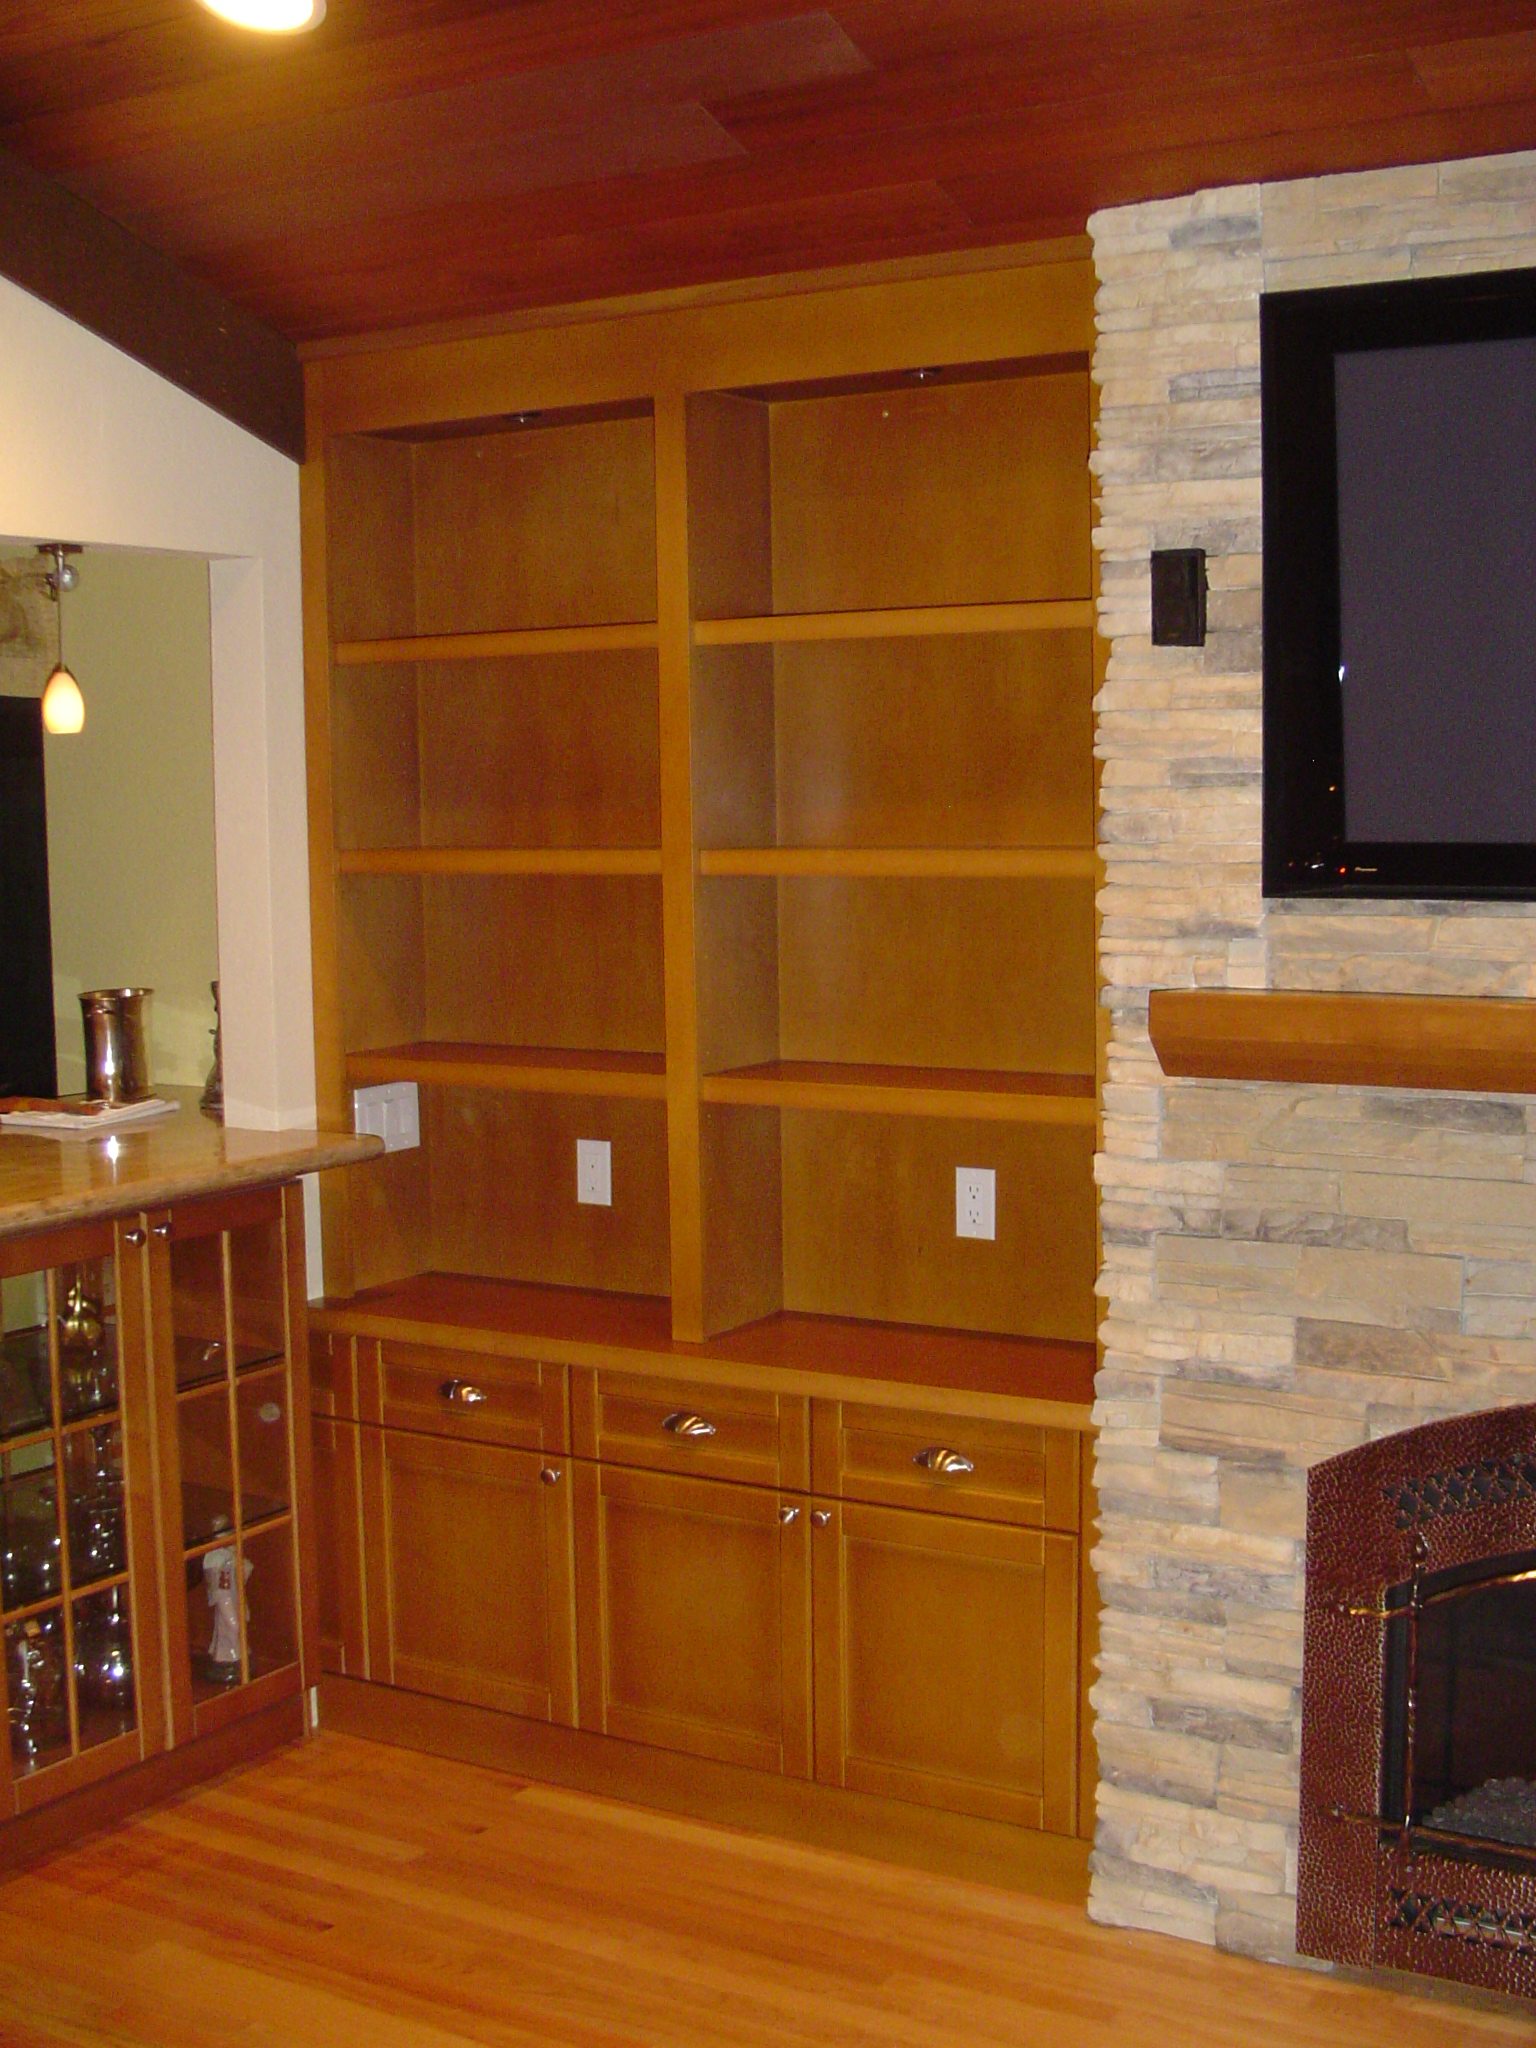 Built-in shelves storage